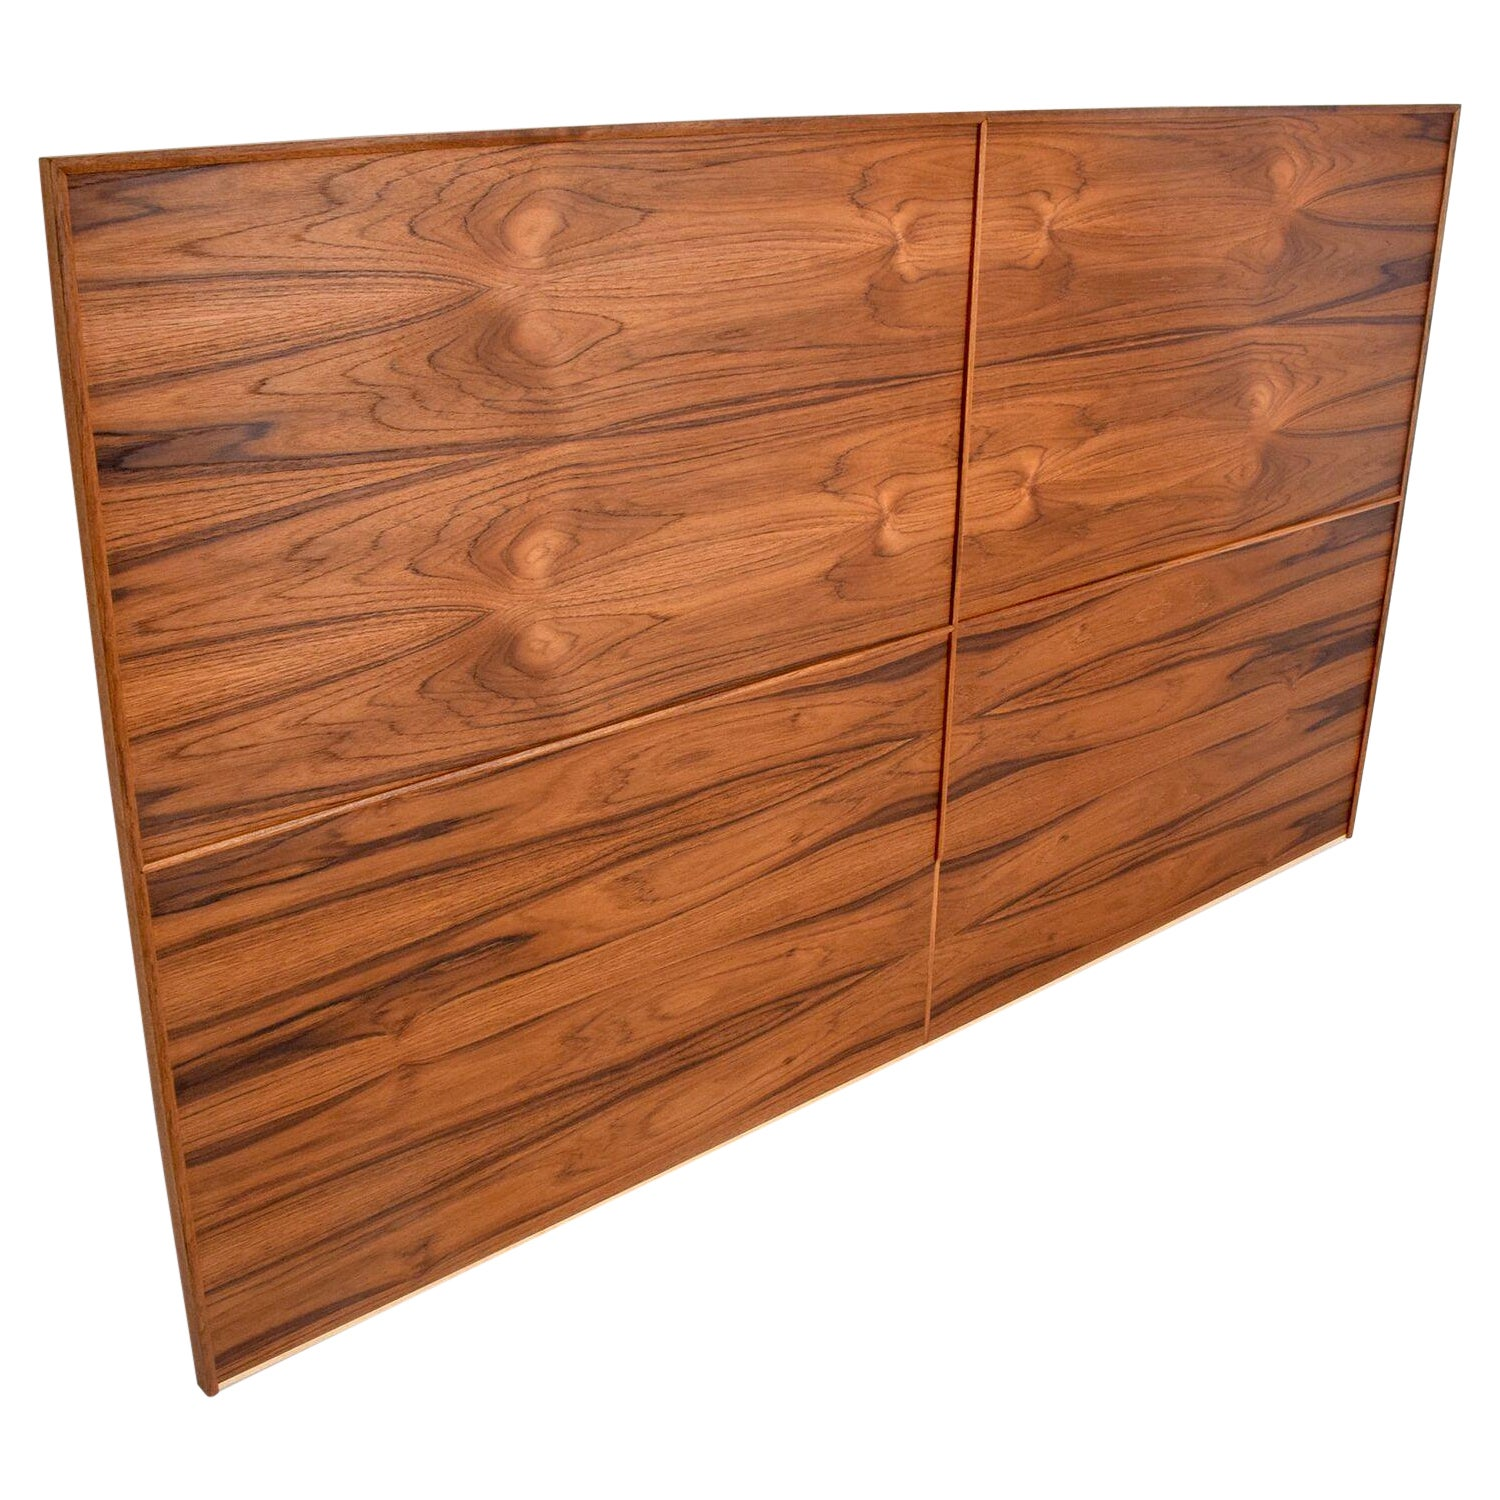 Mid-Century Modern Custom Queen Headboard in Teak Wood by Ambianic